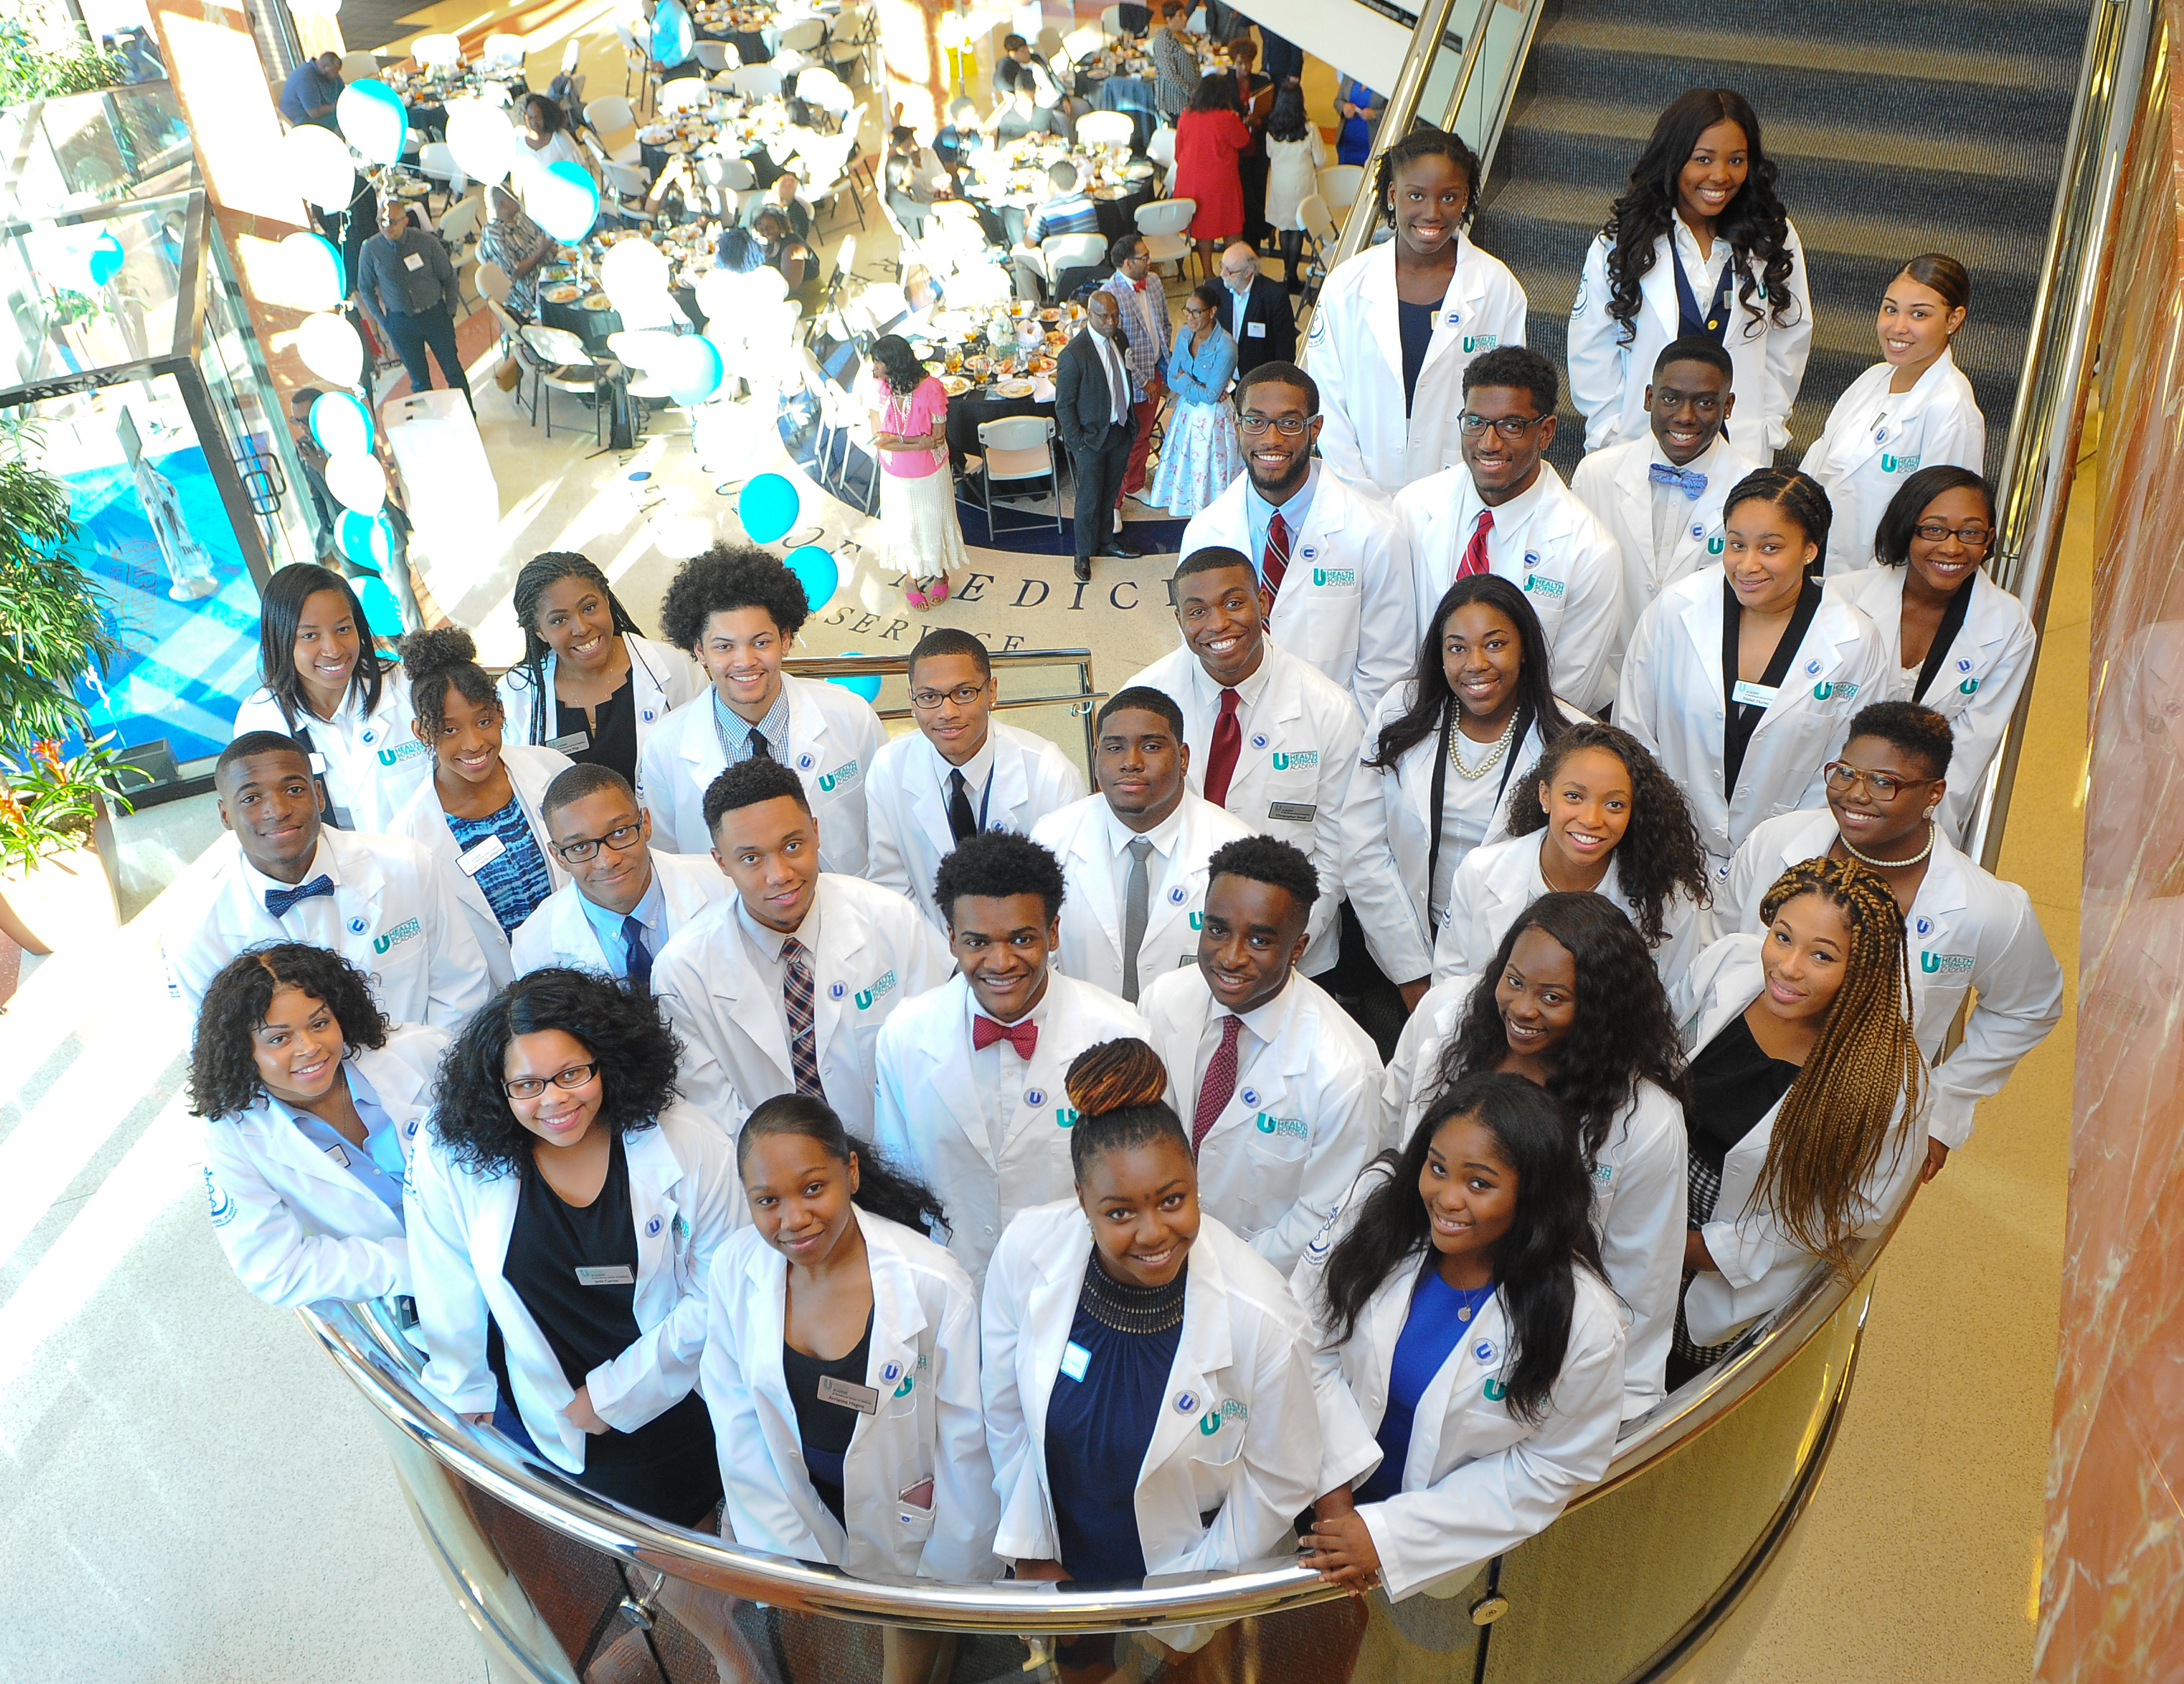 MSM Inducts 30 AUCC Students into the Inaugural Cohort of the Undergraduate Health Sciences Academy